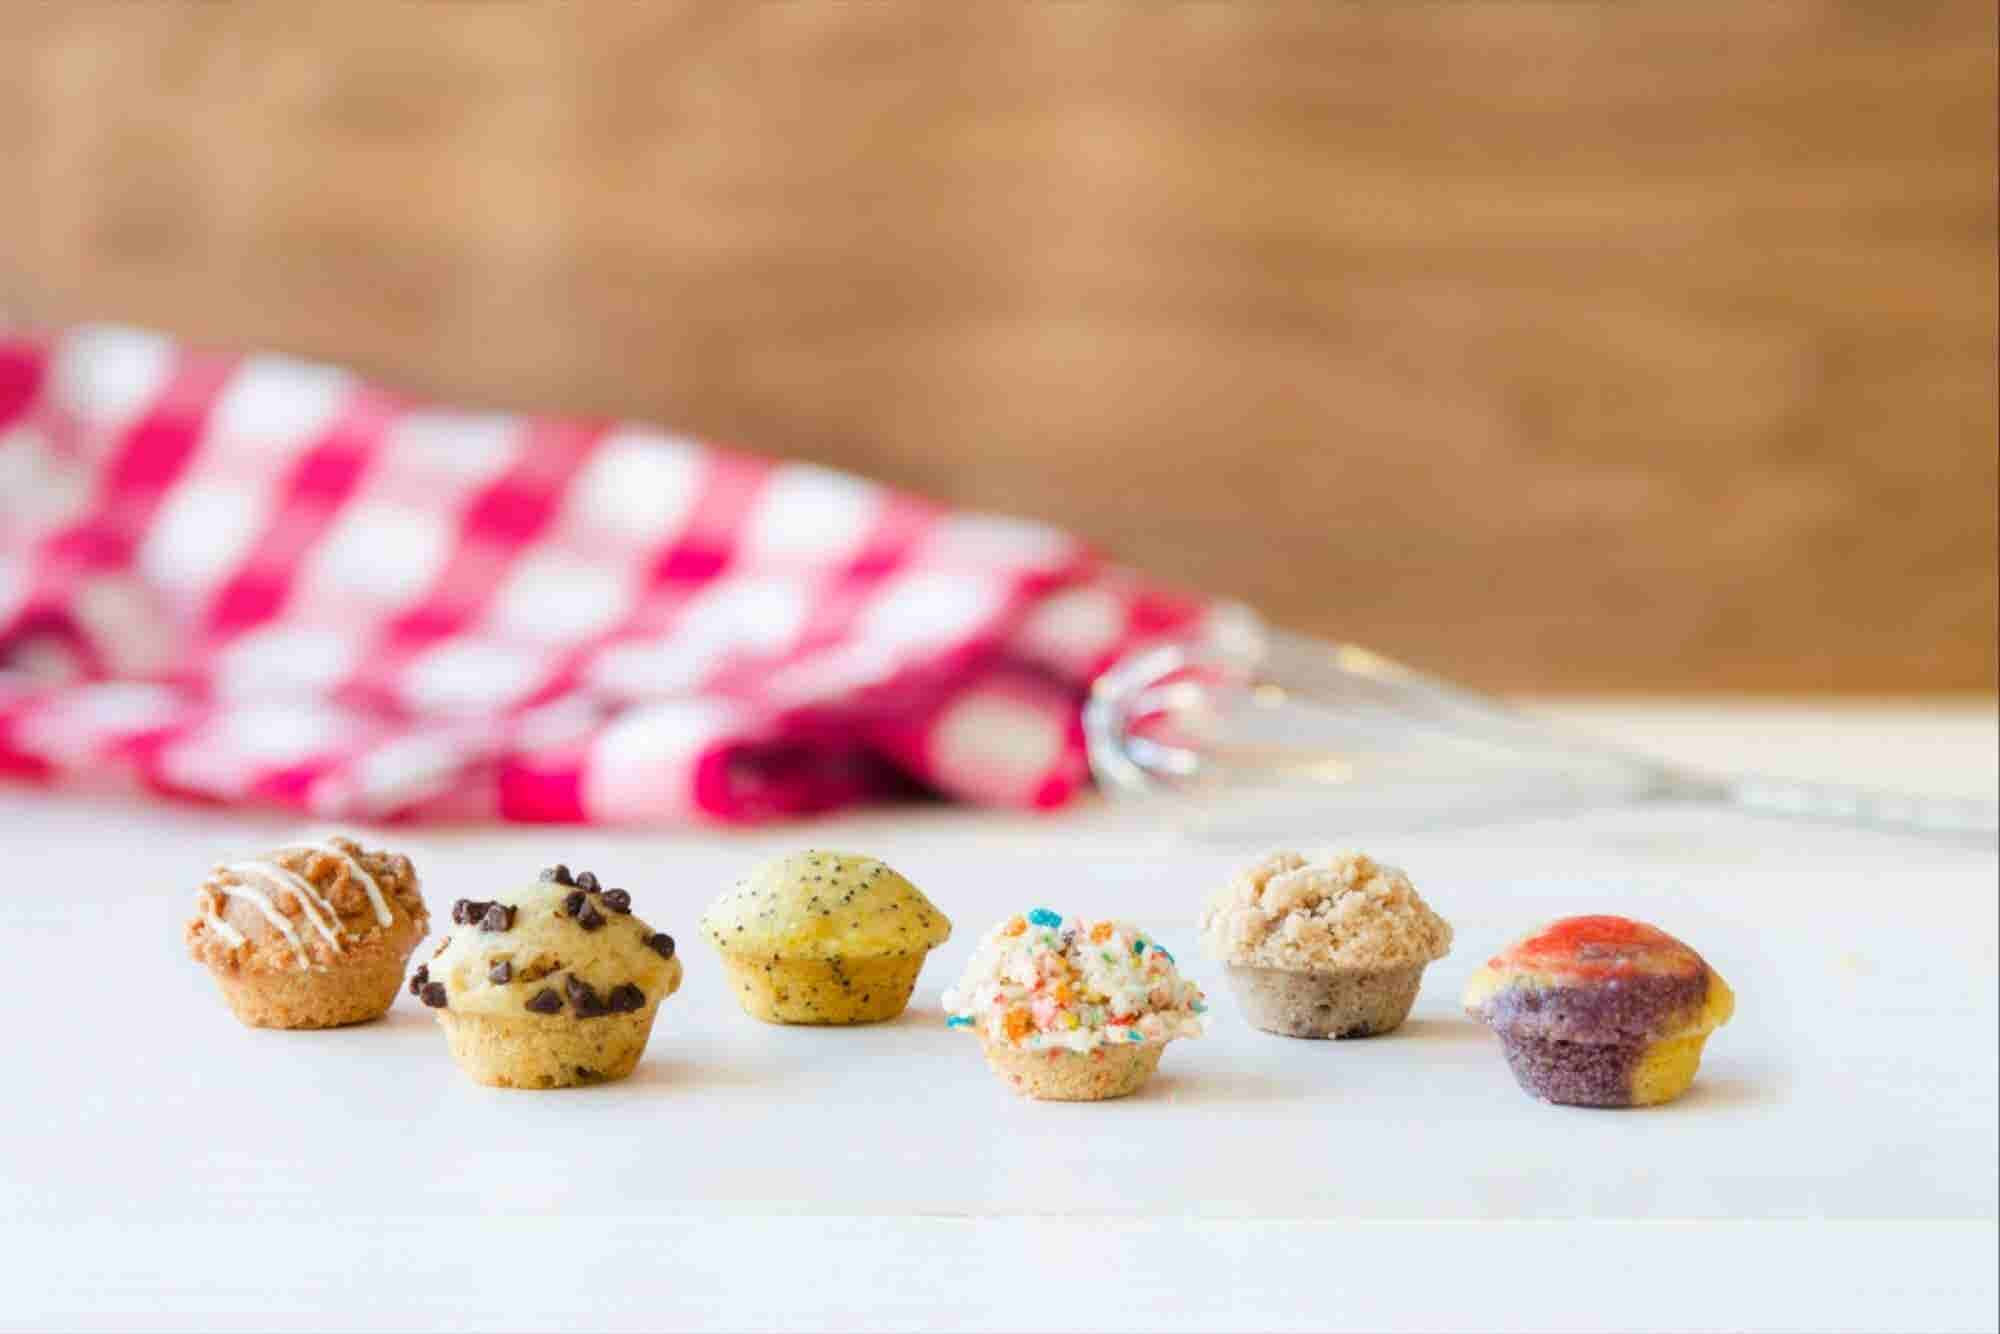 From Cupcakes to Muffins: How Baked by Melissa Plans to Find Sweet Success Once Again